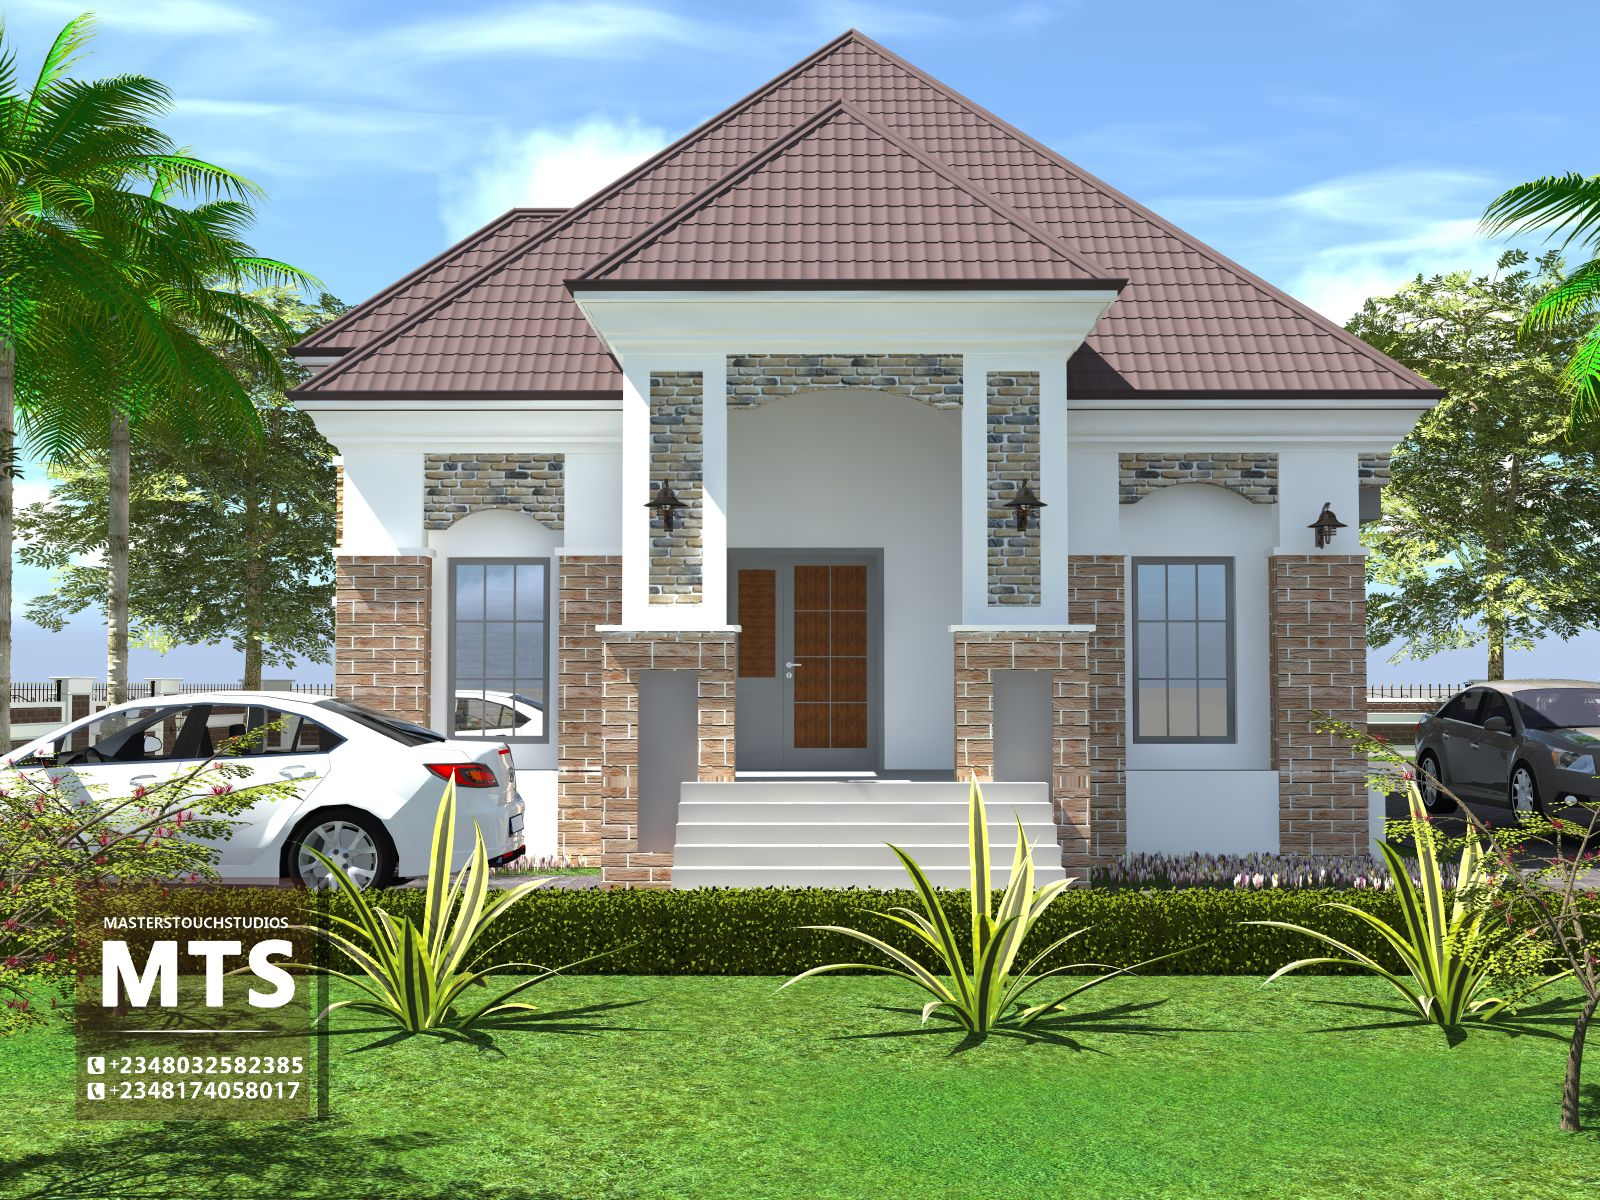 4 Bedroom Bungalow Rf 4010 Bungalow Style House Plans House Plans Mansion Architectural House Plans